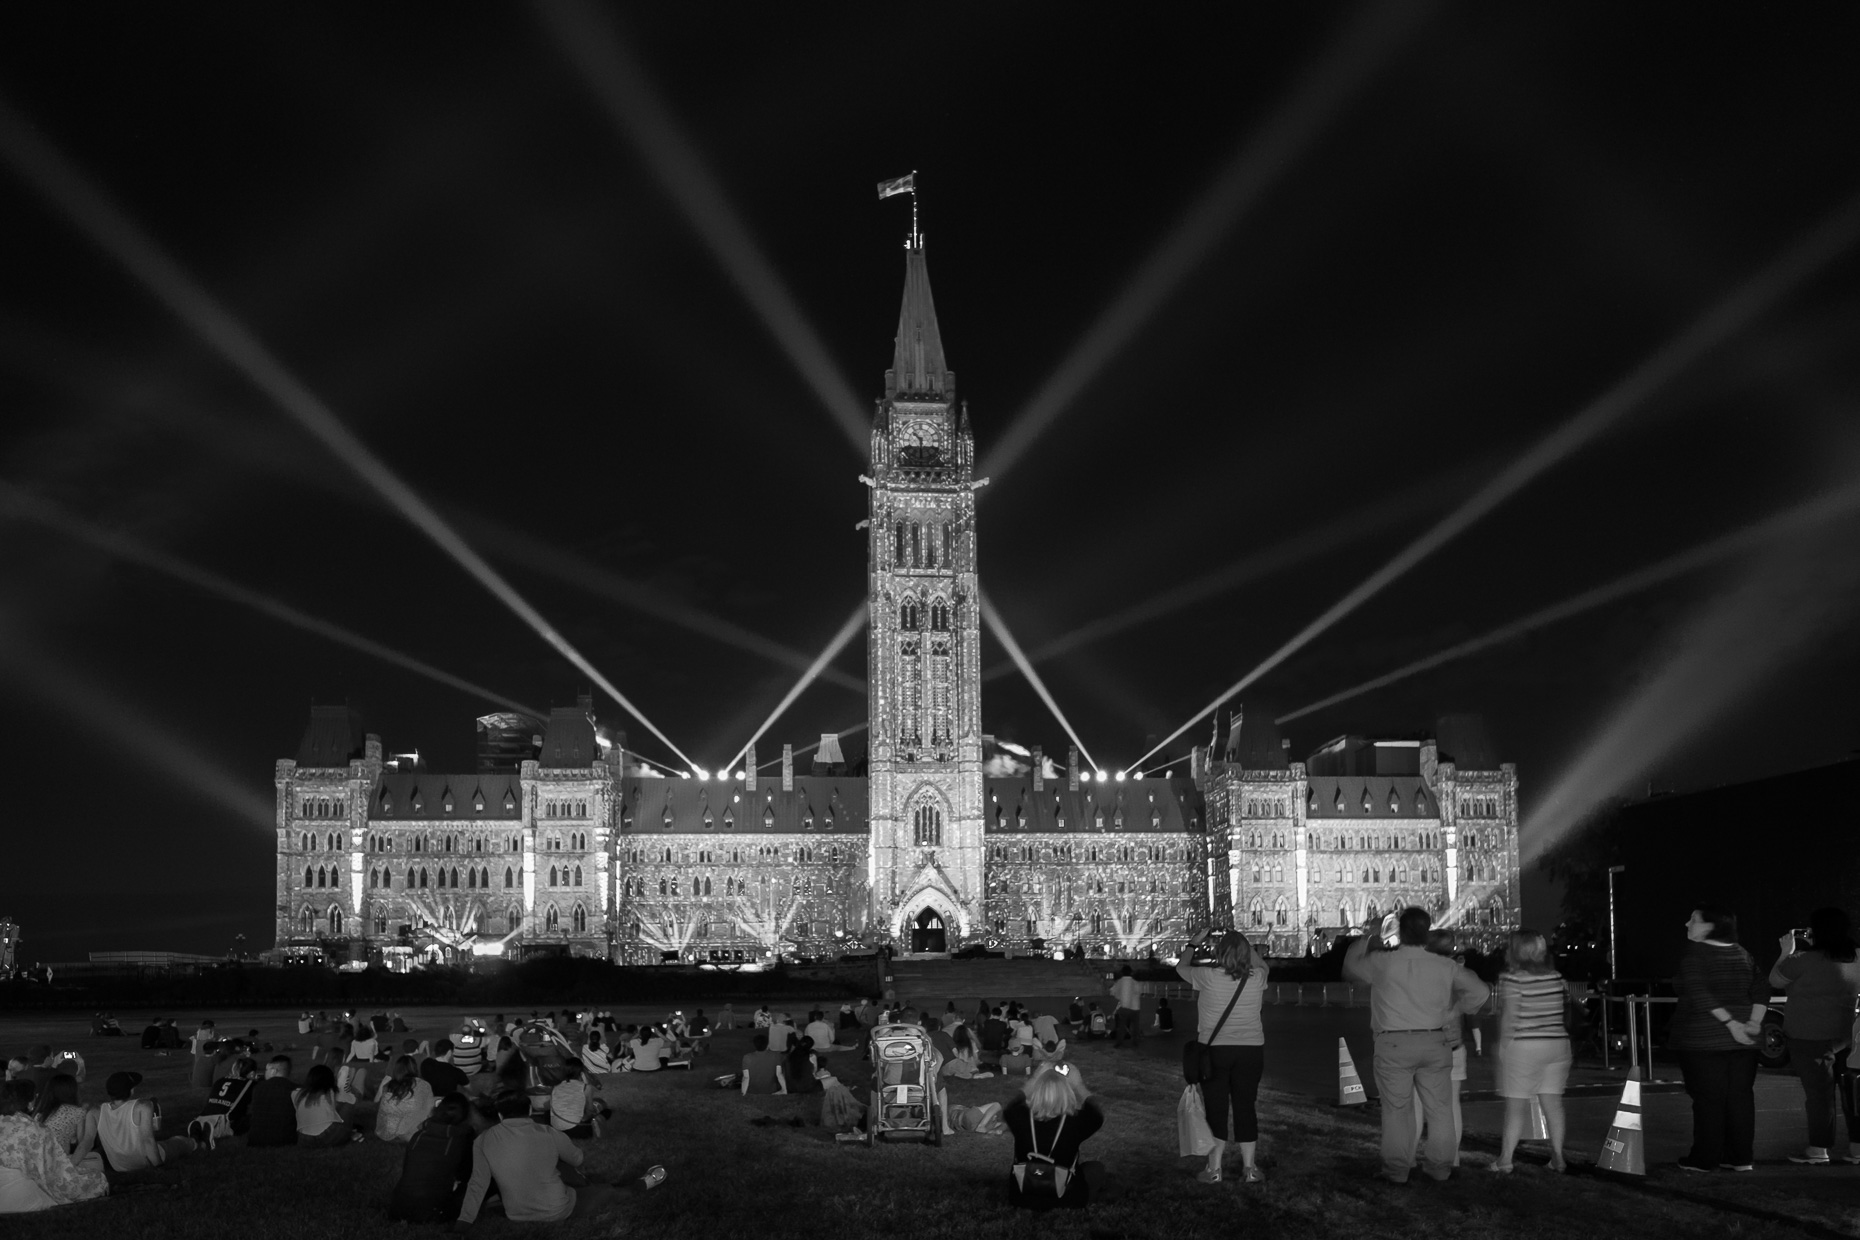 Light Show on Parliament Building, Ottawa, Ontario, Canada